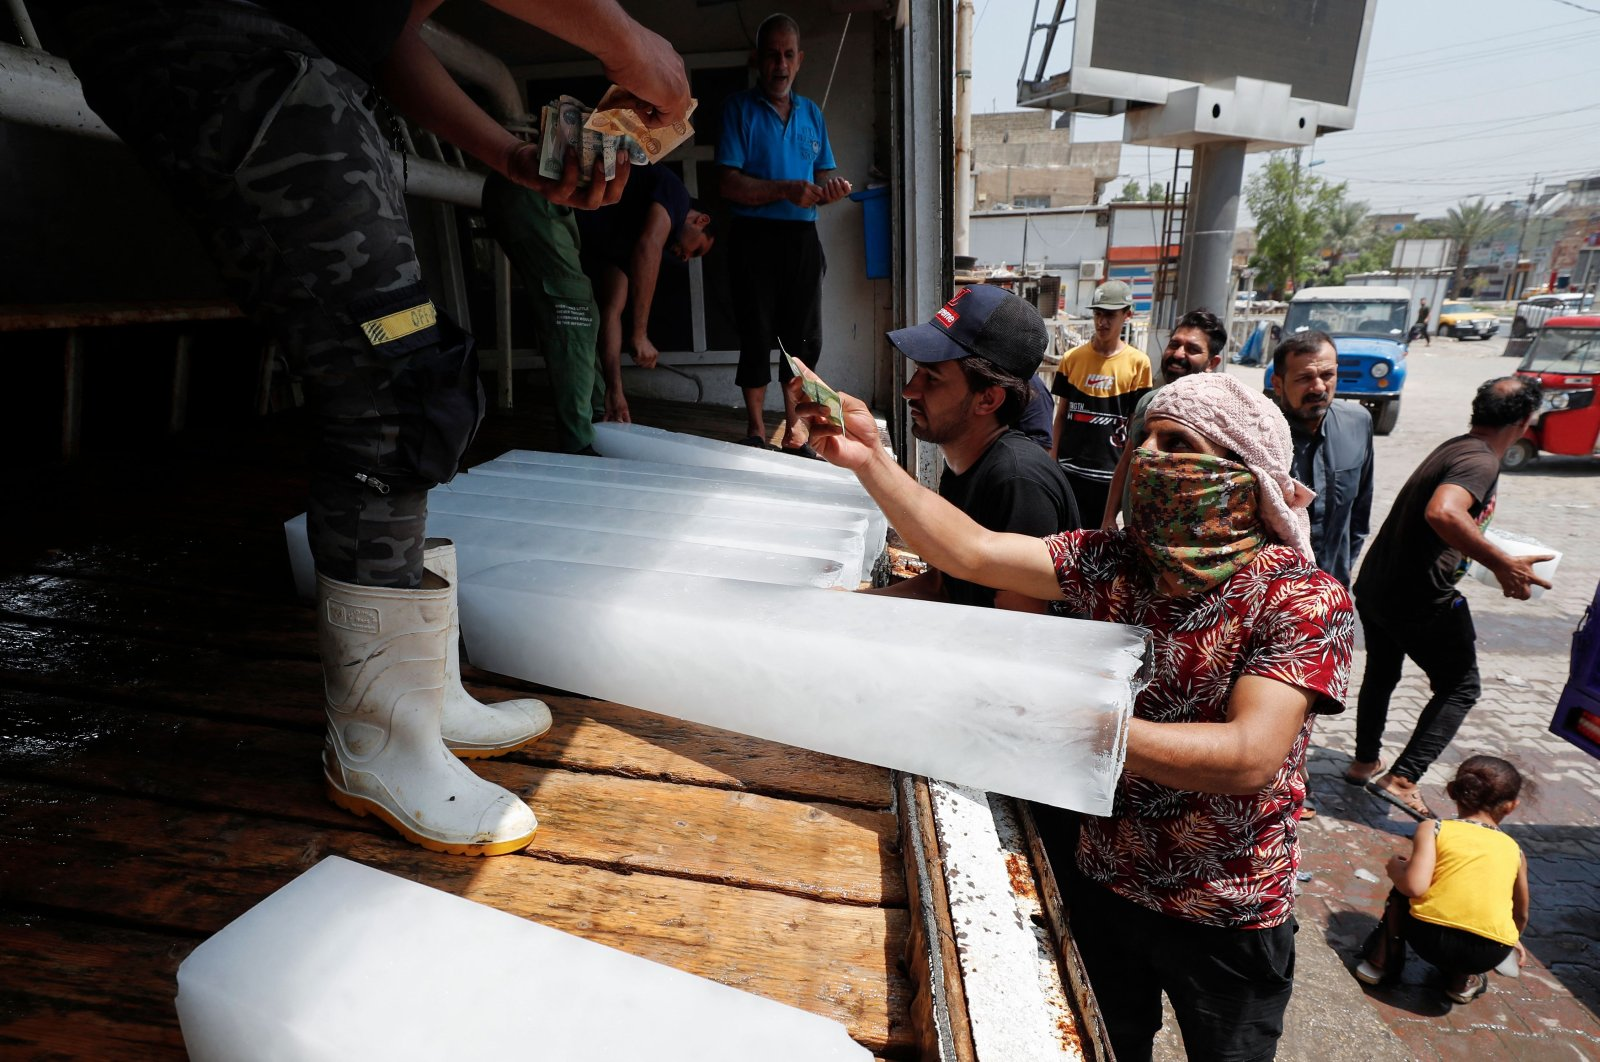 Iraqis buy ice blocks at a factory in Sadr City, east of the capital Baghdad, amid power outages and soaring temperatures, Iraq, July 2, 2021. (AFP Photo)